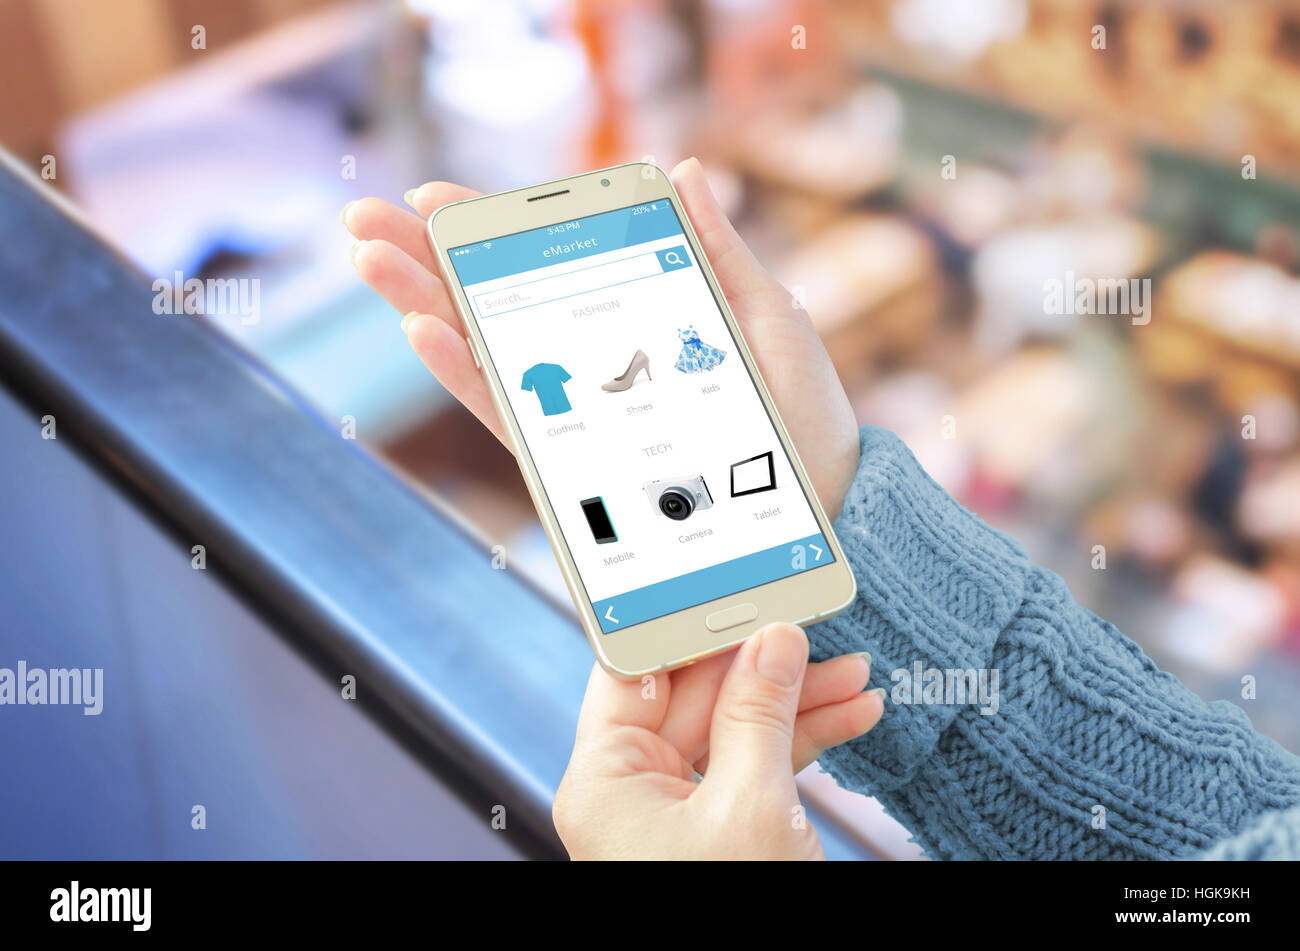 Woman Showing Online Shop App On Mobile Phone Shopping Center In Background